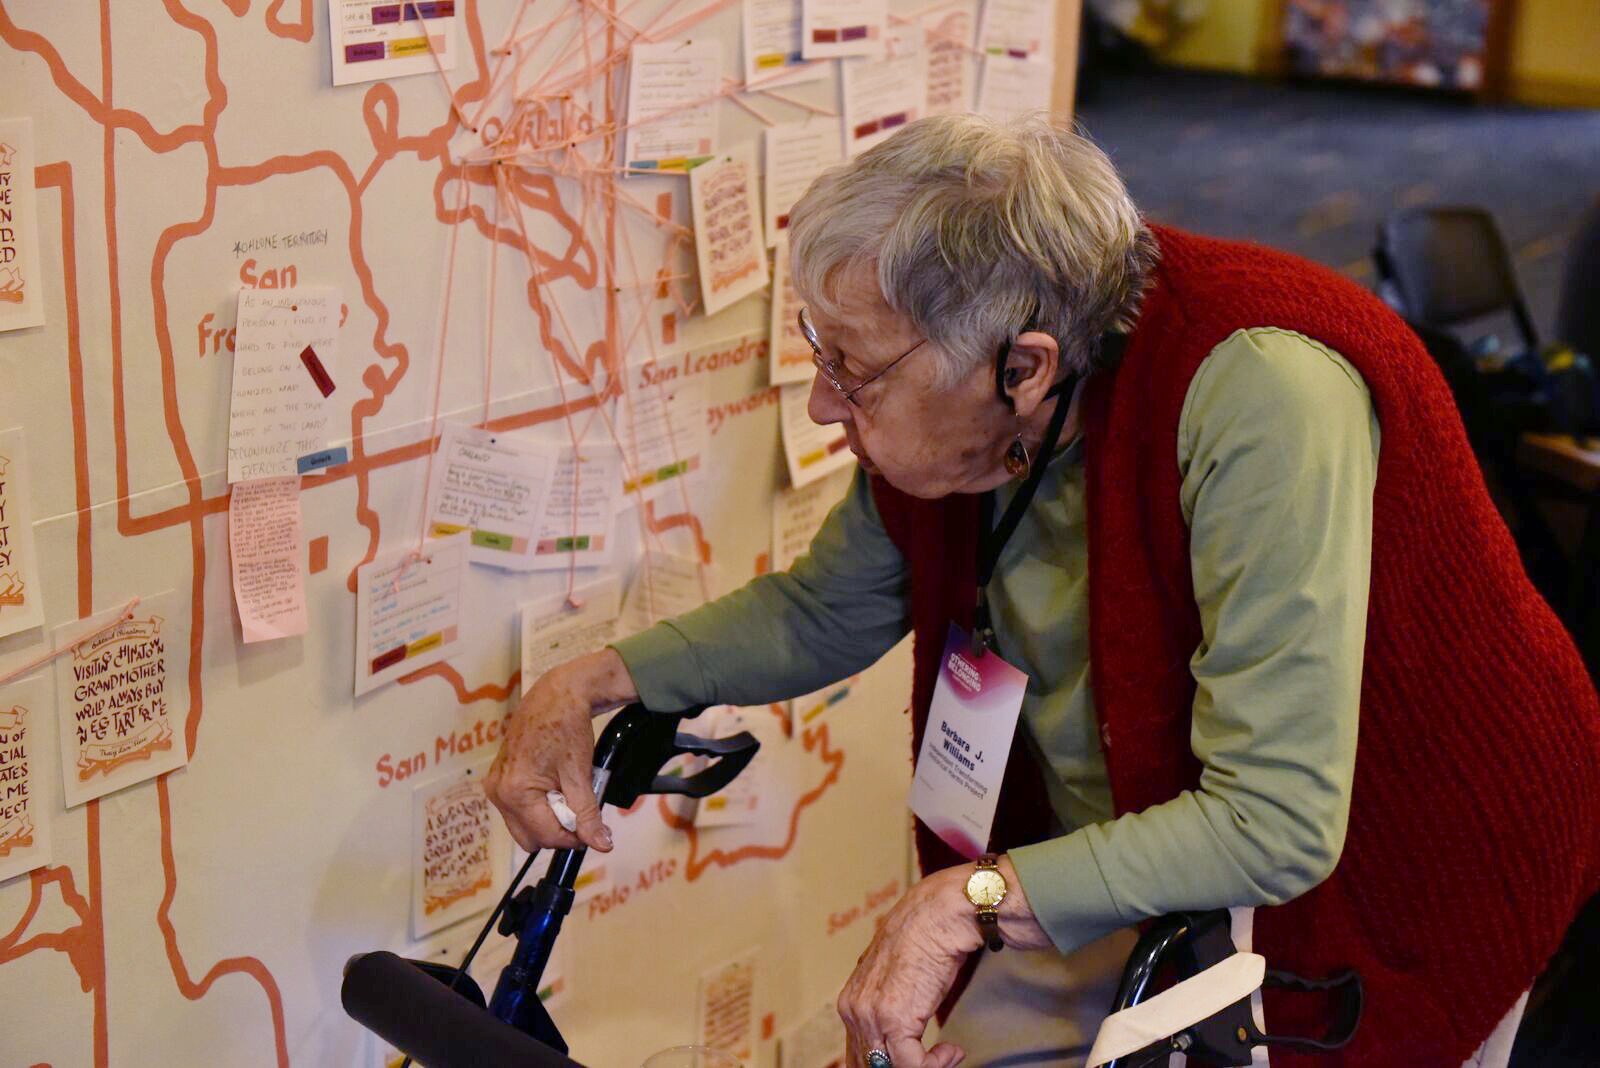 A 2019 Othering & Belonging conference attendee reads through the map of places of belonging created by Haas Institute Artist in Residence Christine Wong Yap and dozens of conference attendees. Photo by Eric Arnold.